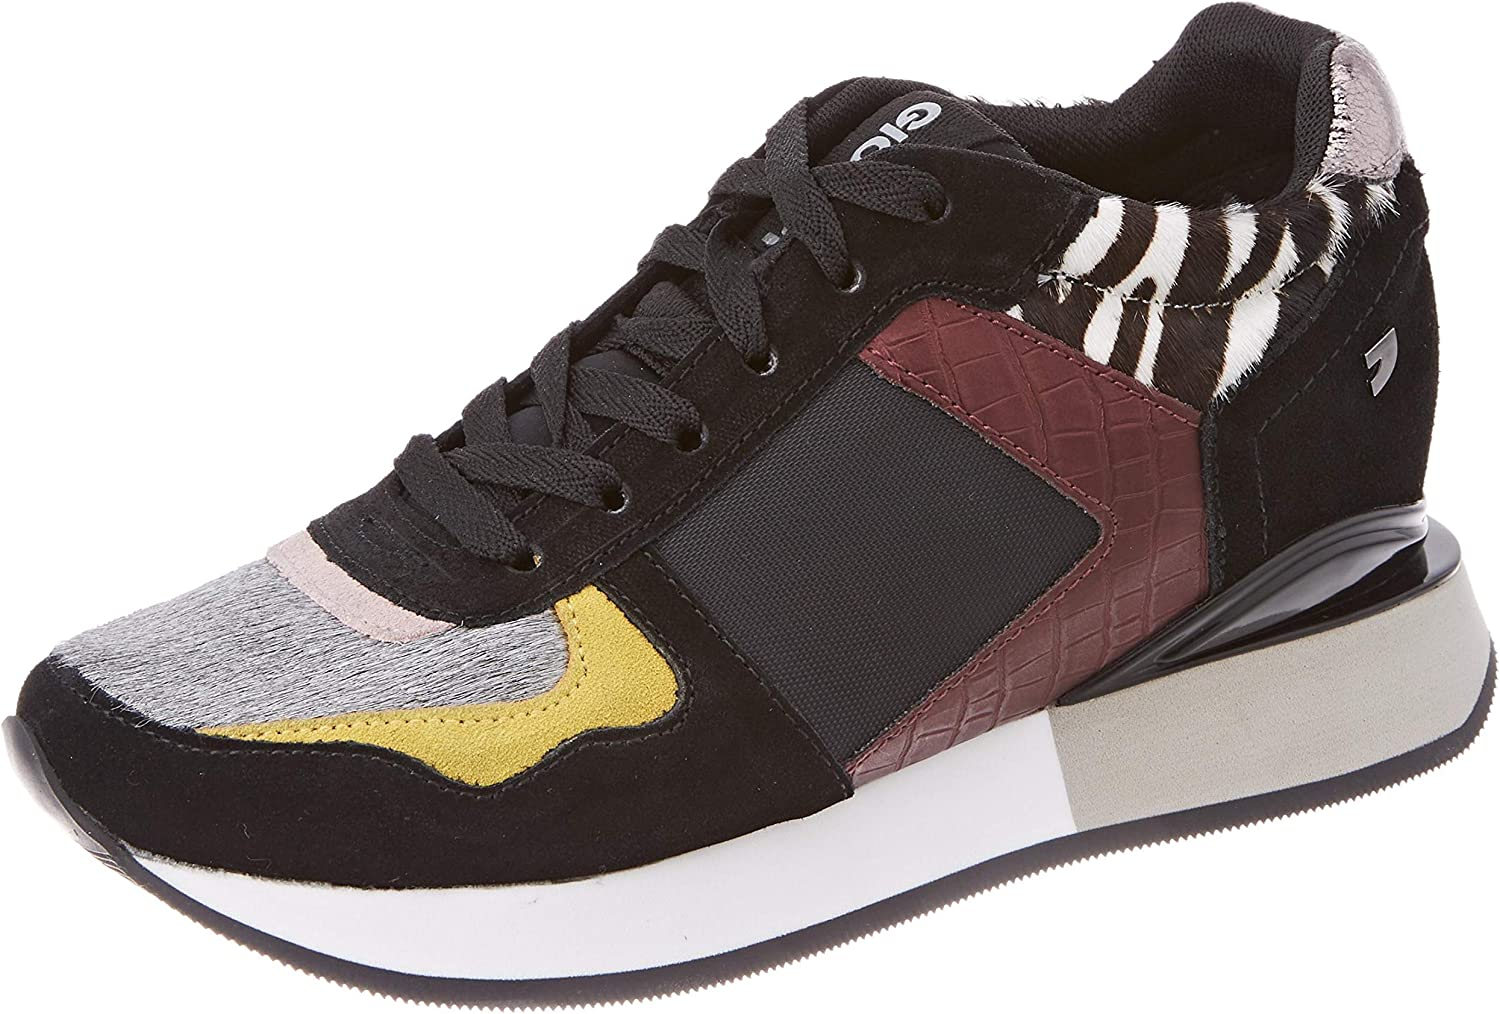 GIOSEPPO free Women's Low-top Trainers Sneaker Max 62% OFF